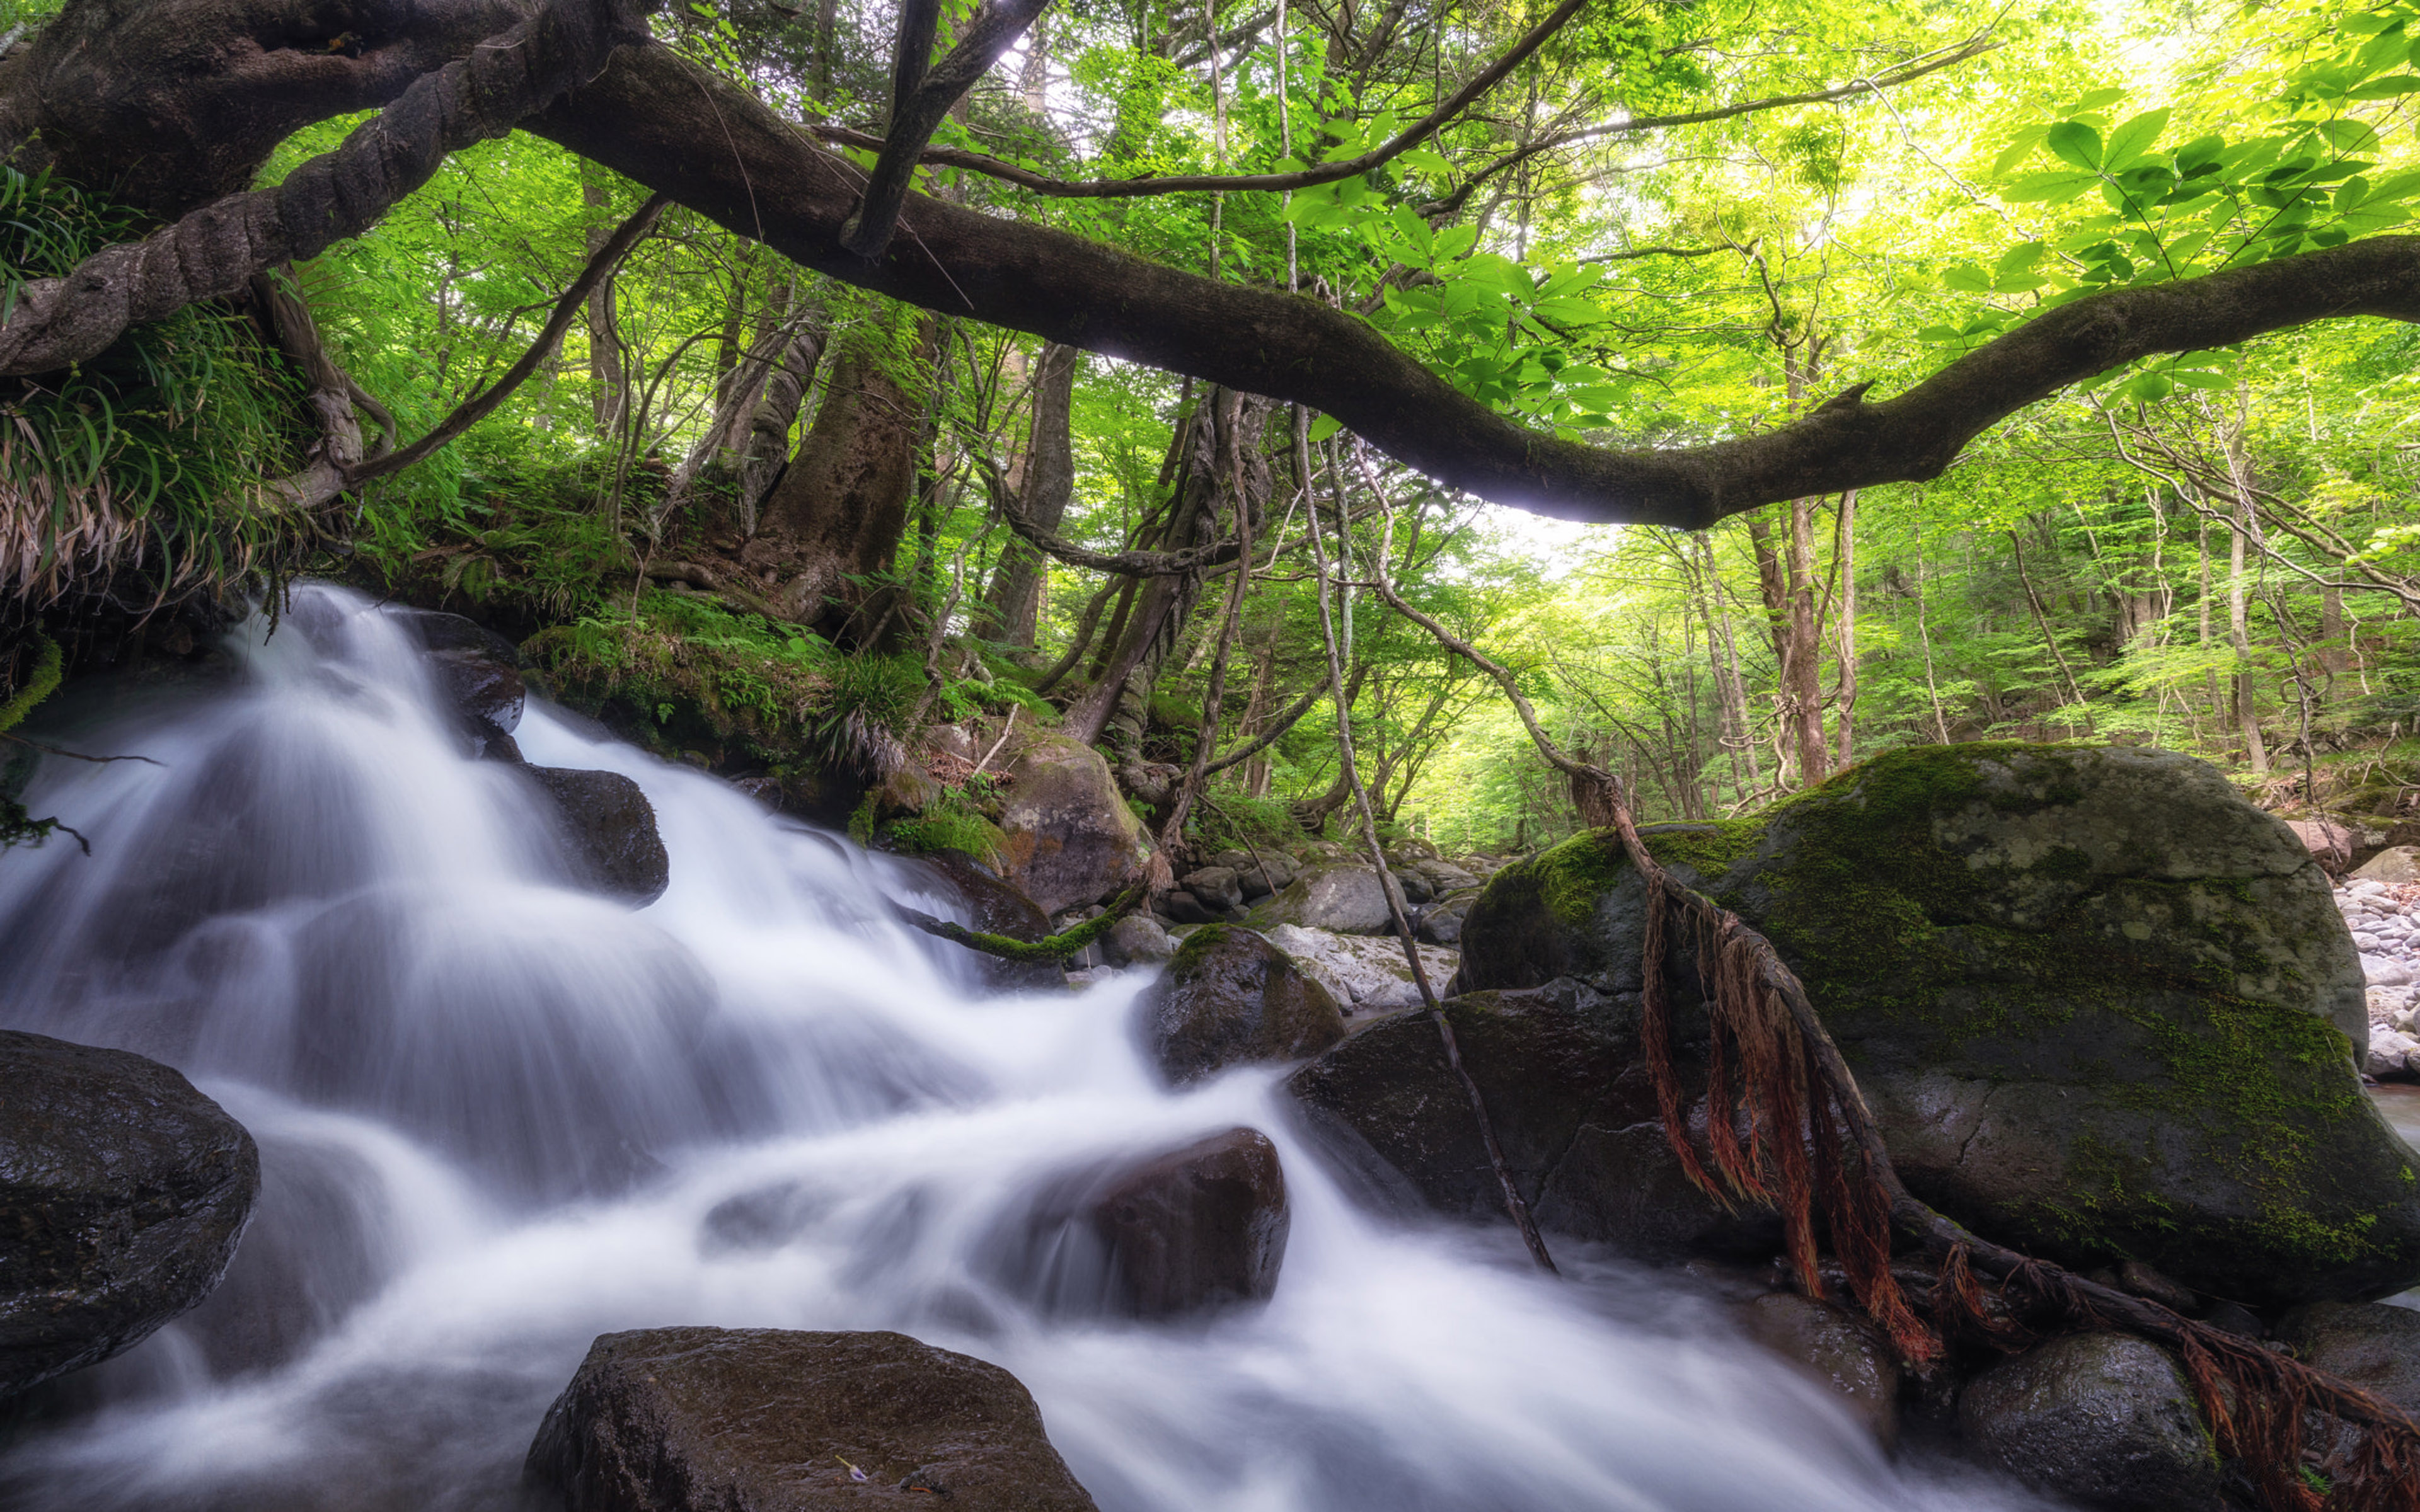 Spring Mountain Stream Rocks Water Forest Trees Roots